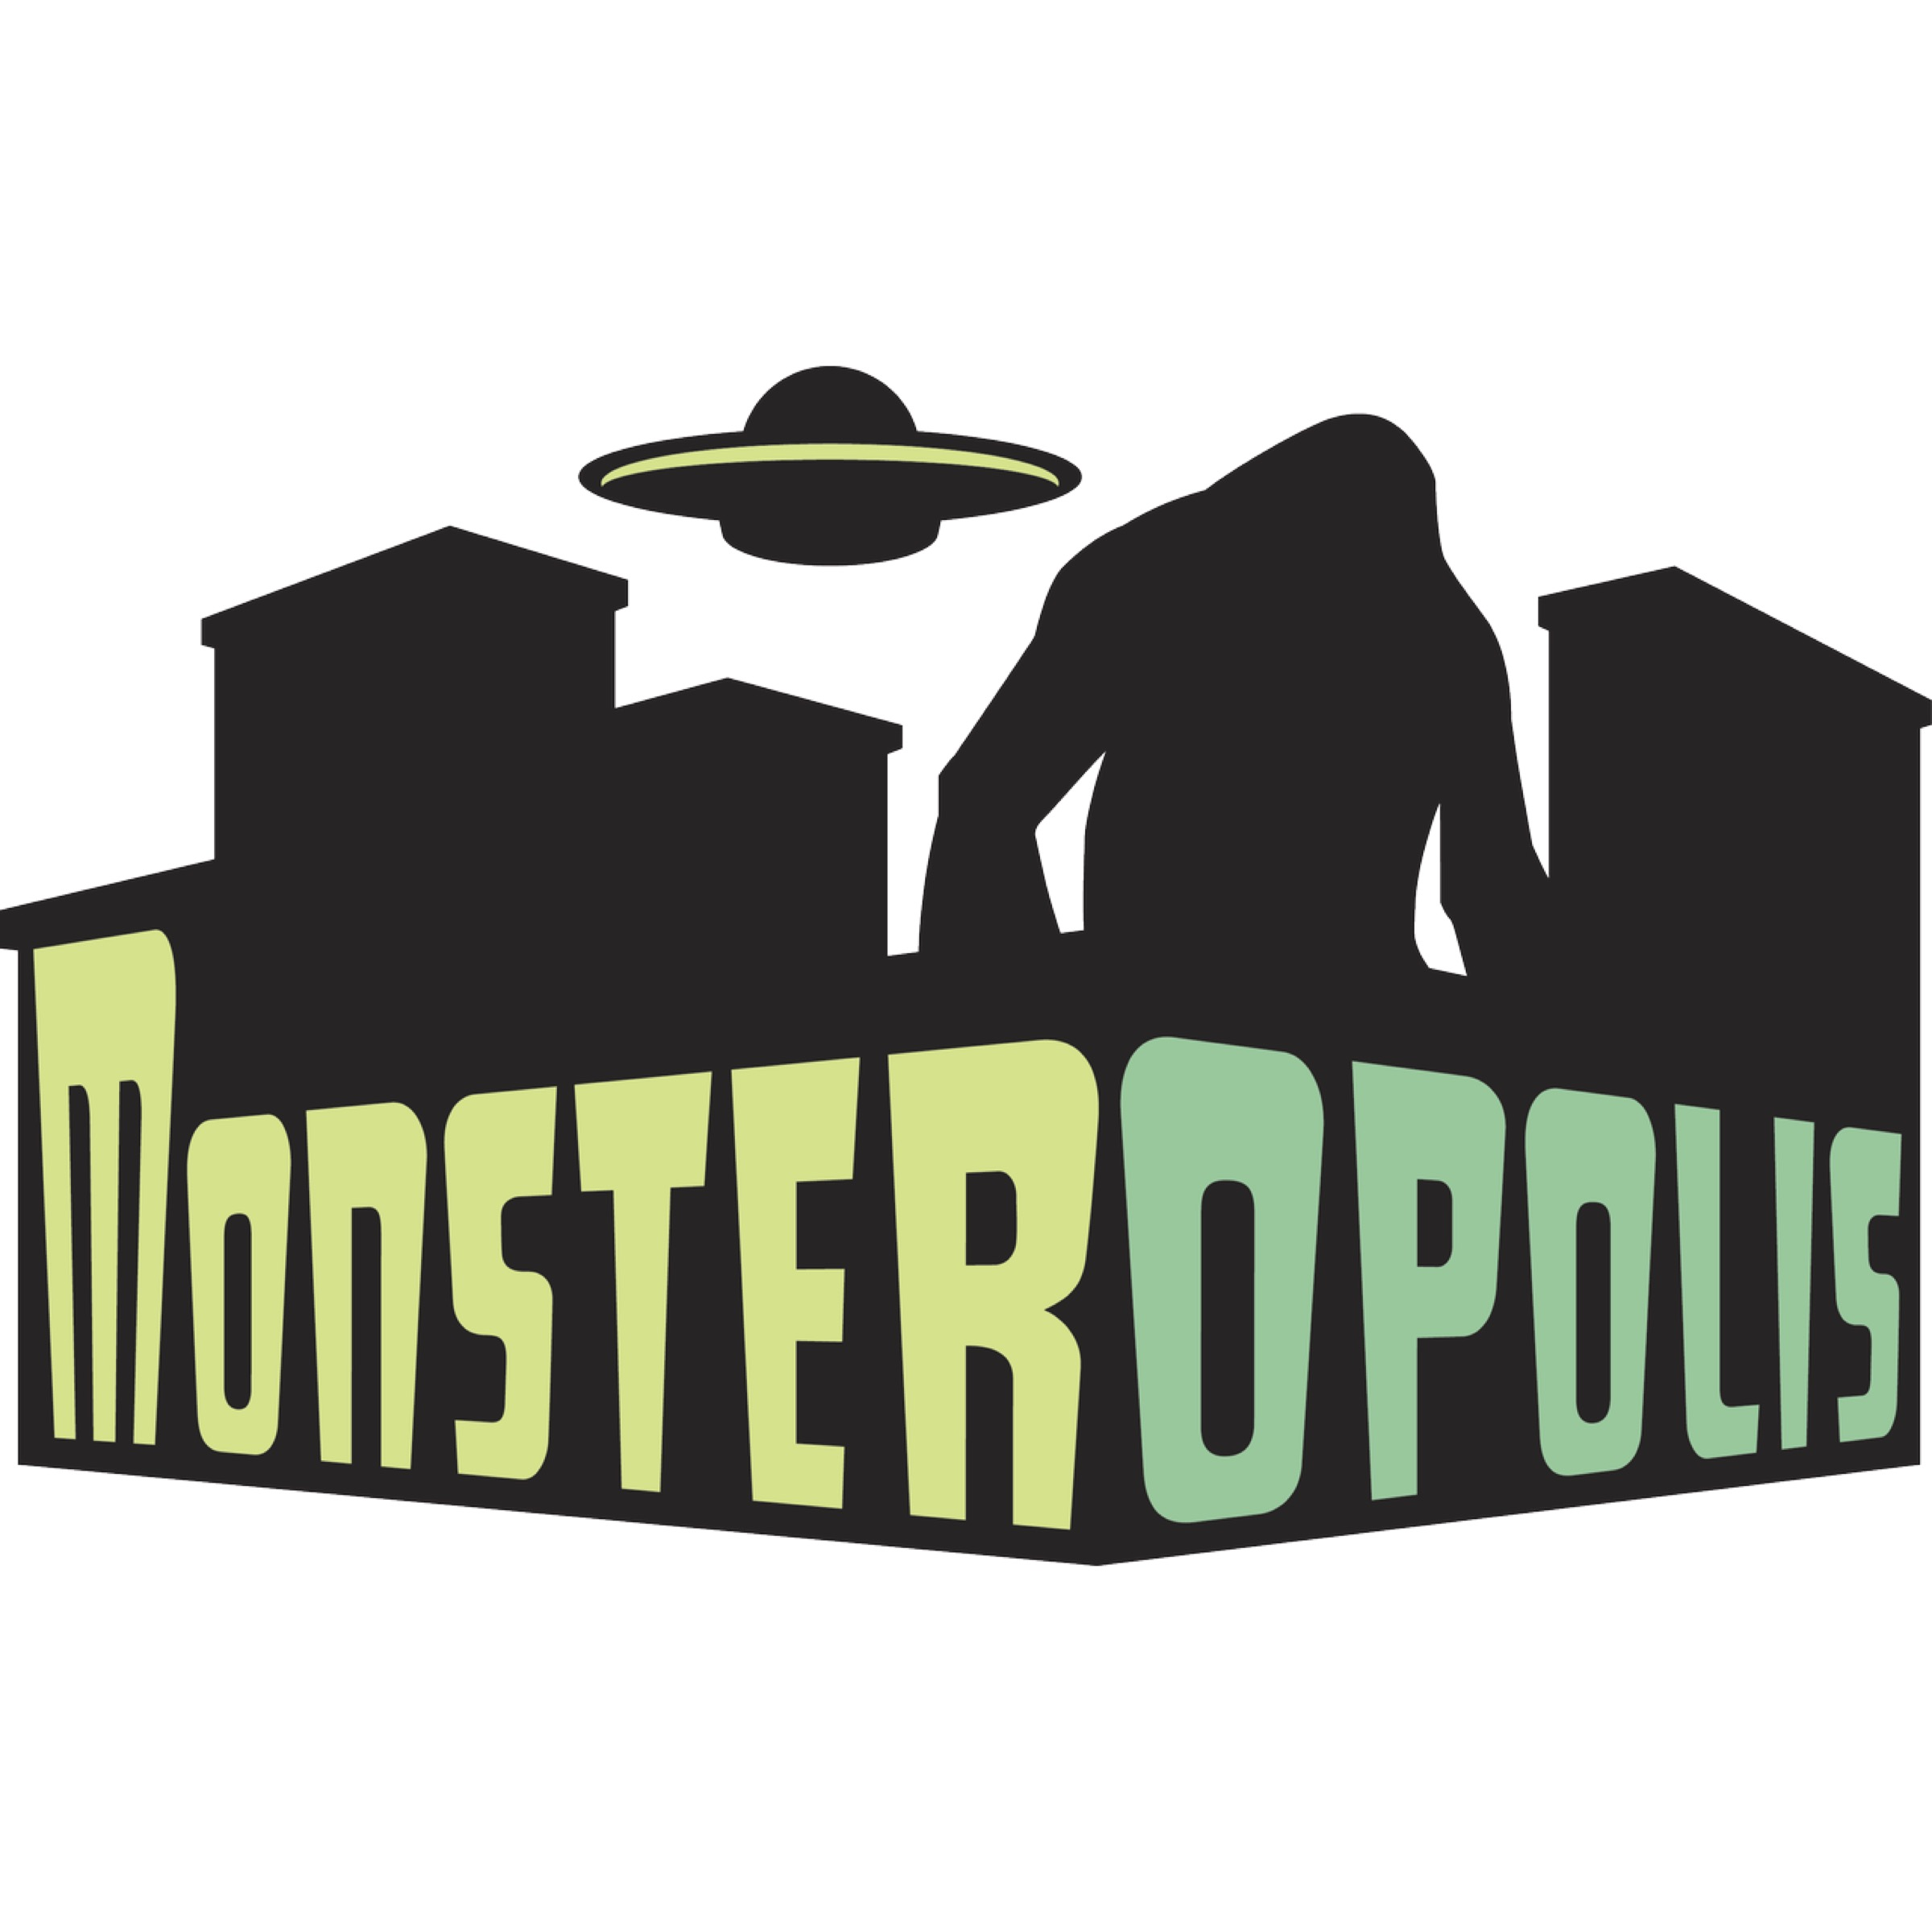 monsteropolis.jpeg